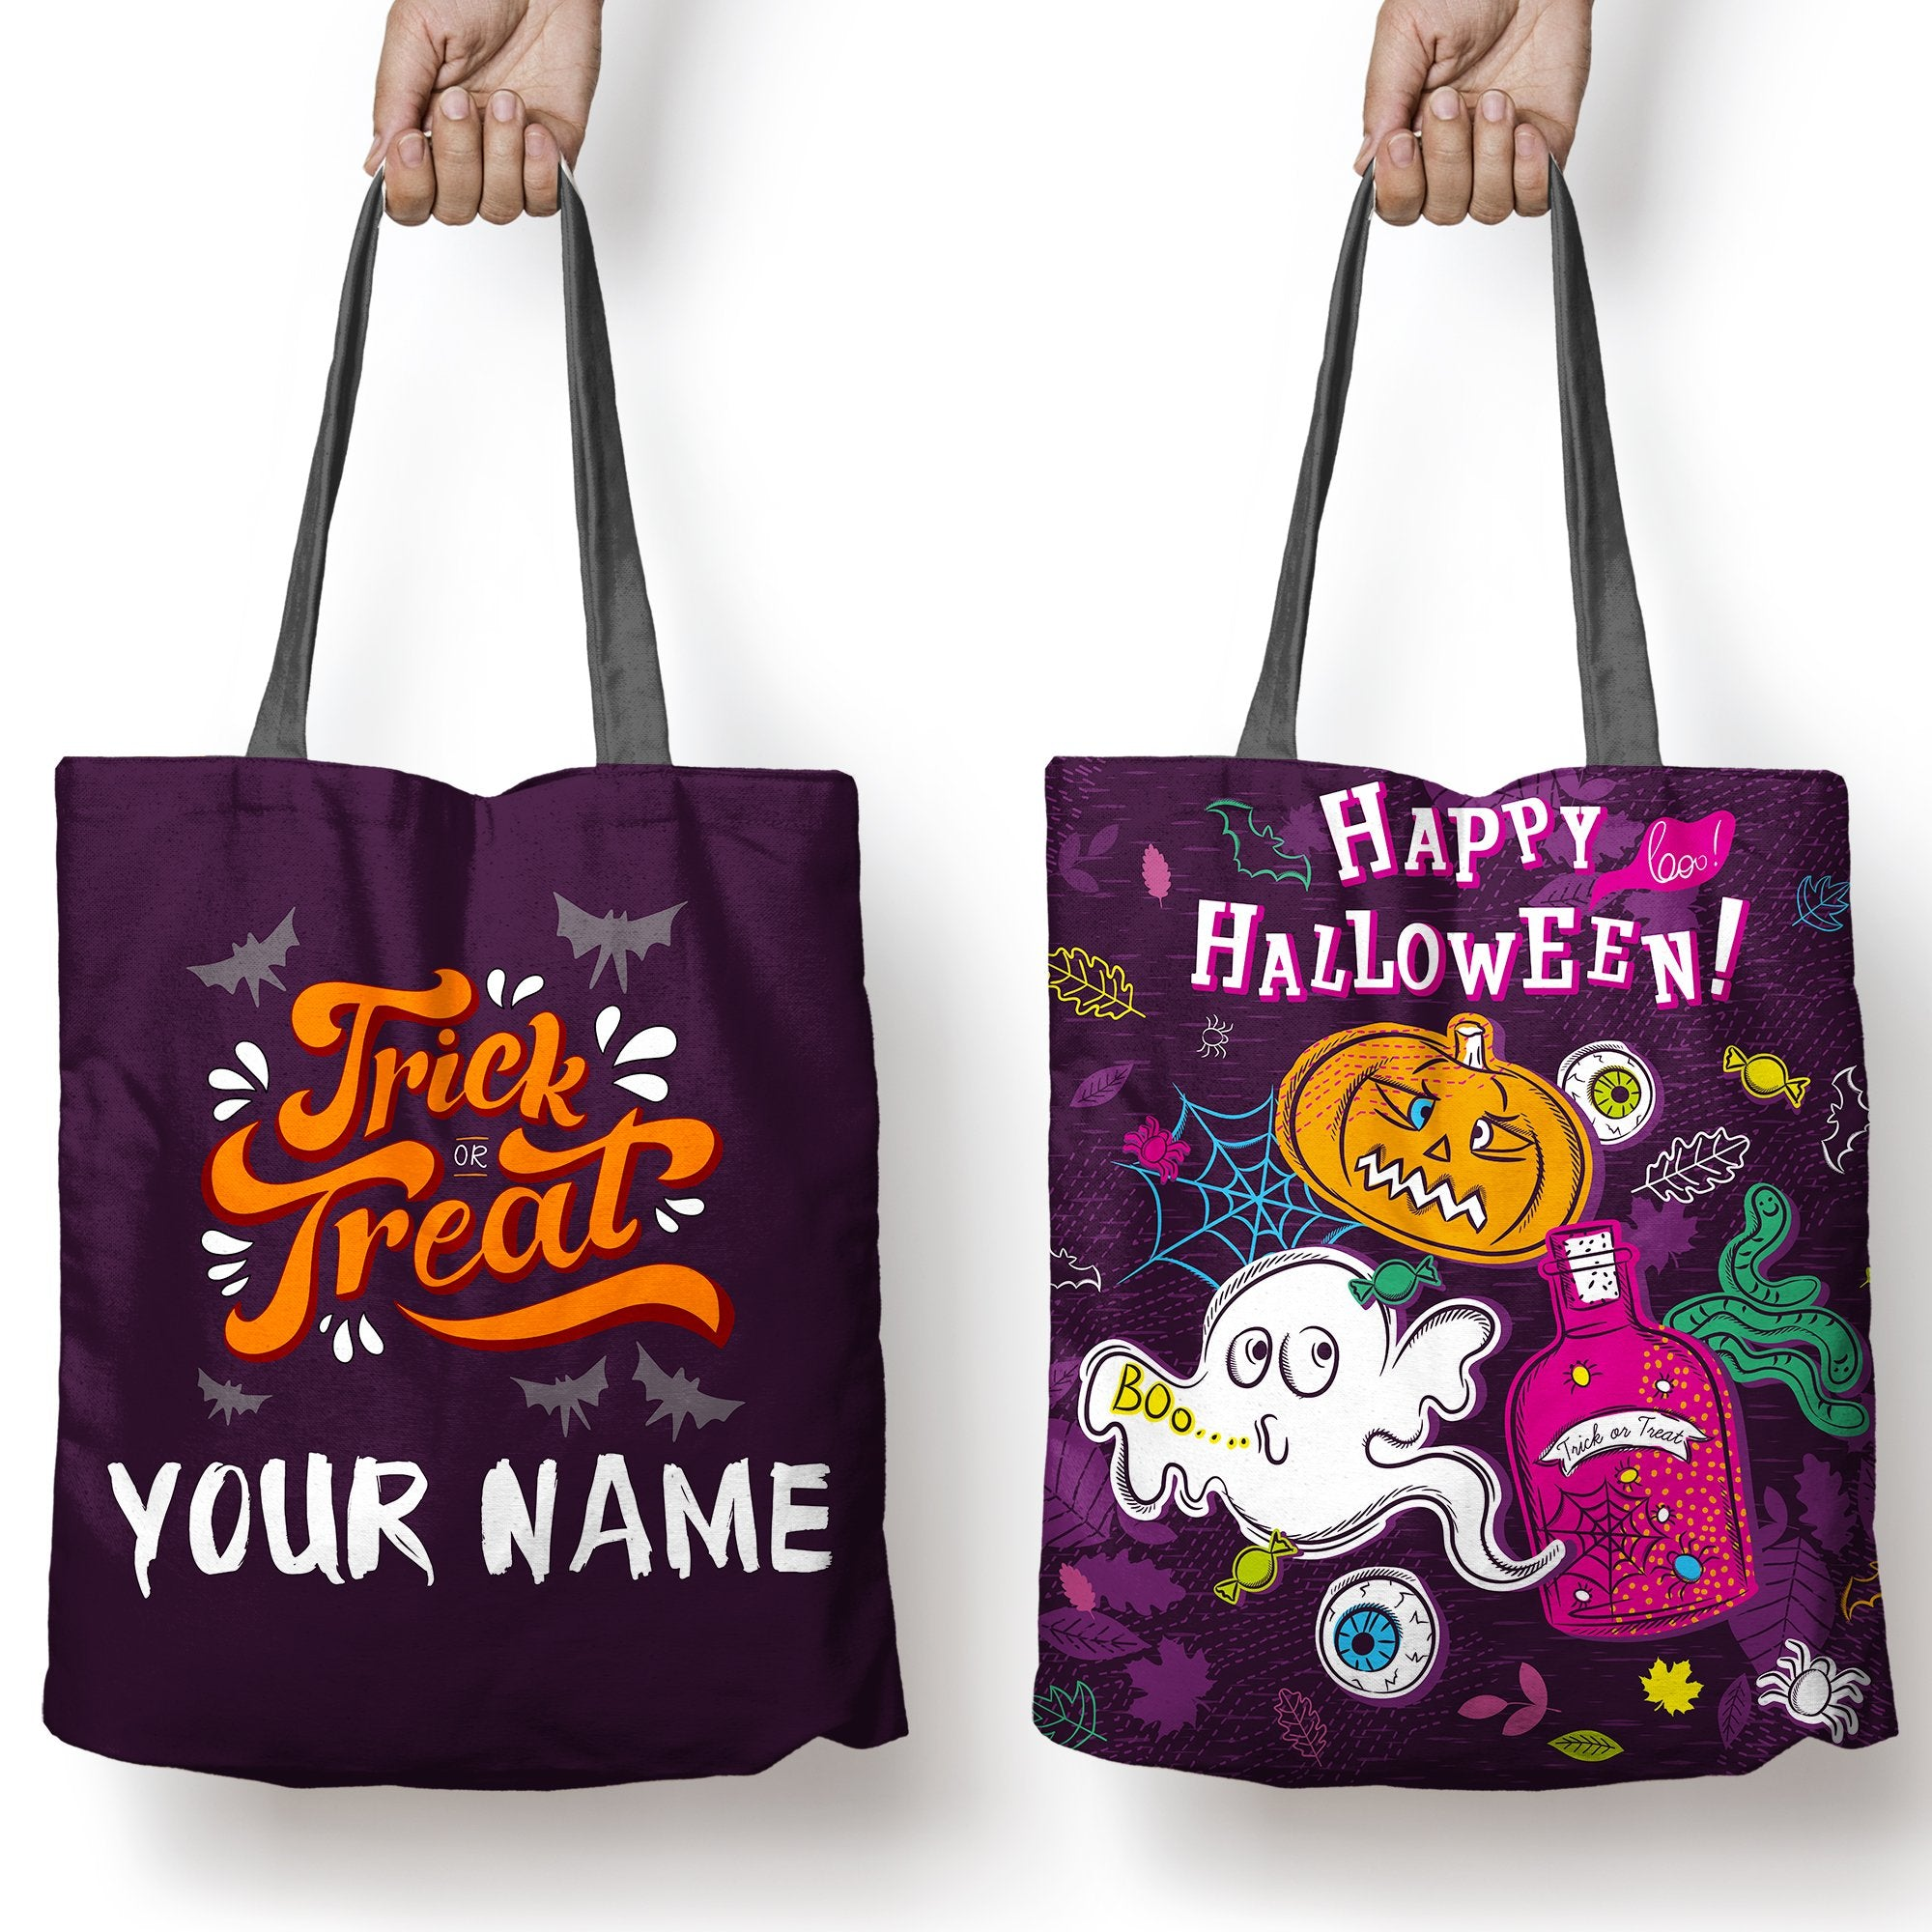 Halloween Trick Or Treat Bags Personalized.Halloween Tote